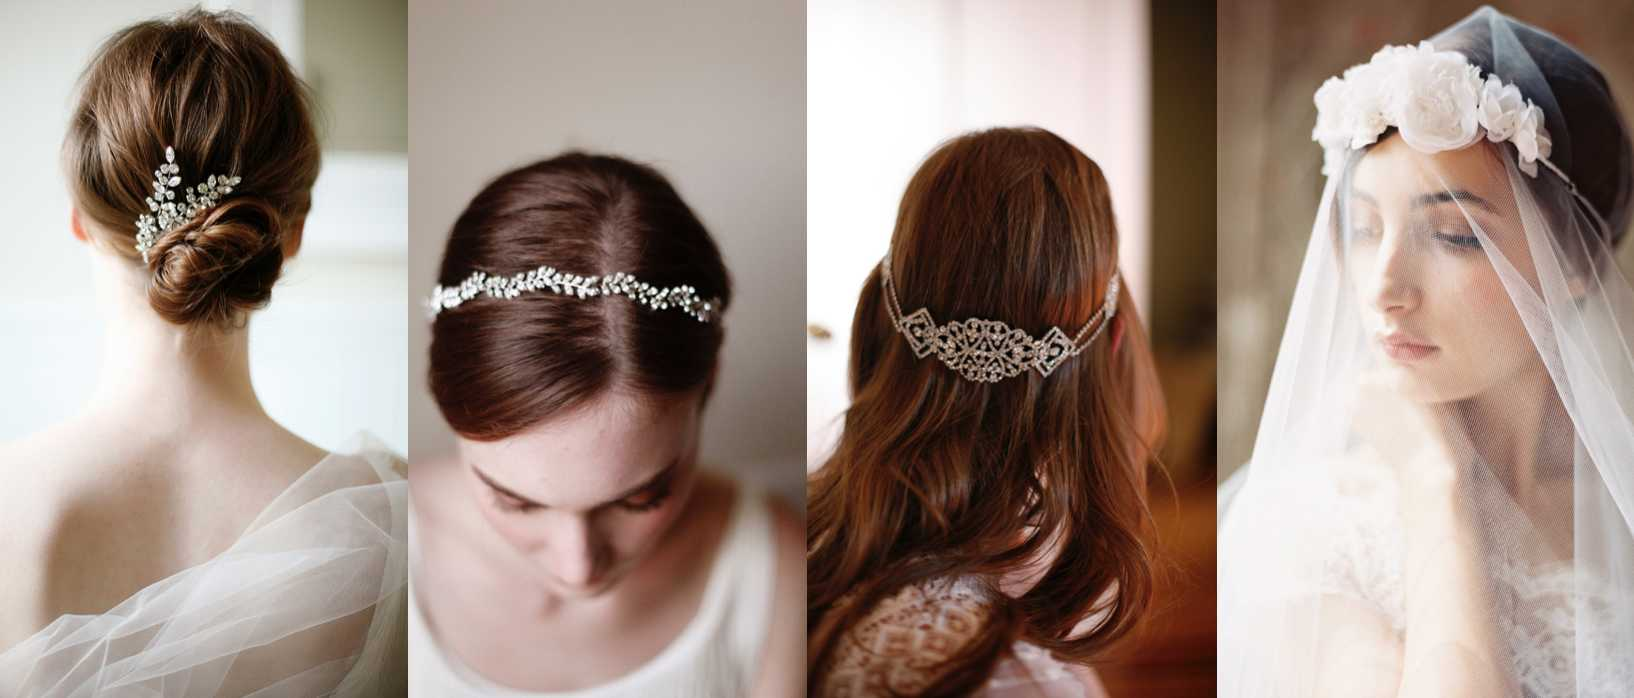 which bridal accessories go with which type of wedding? - advice